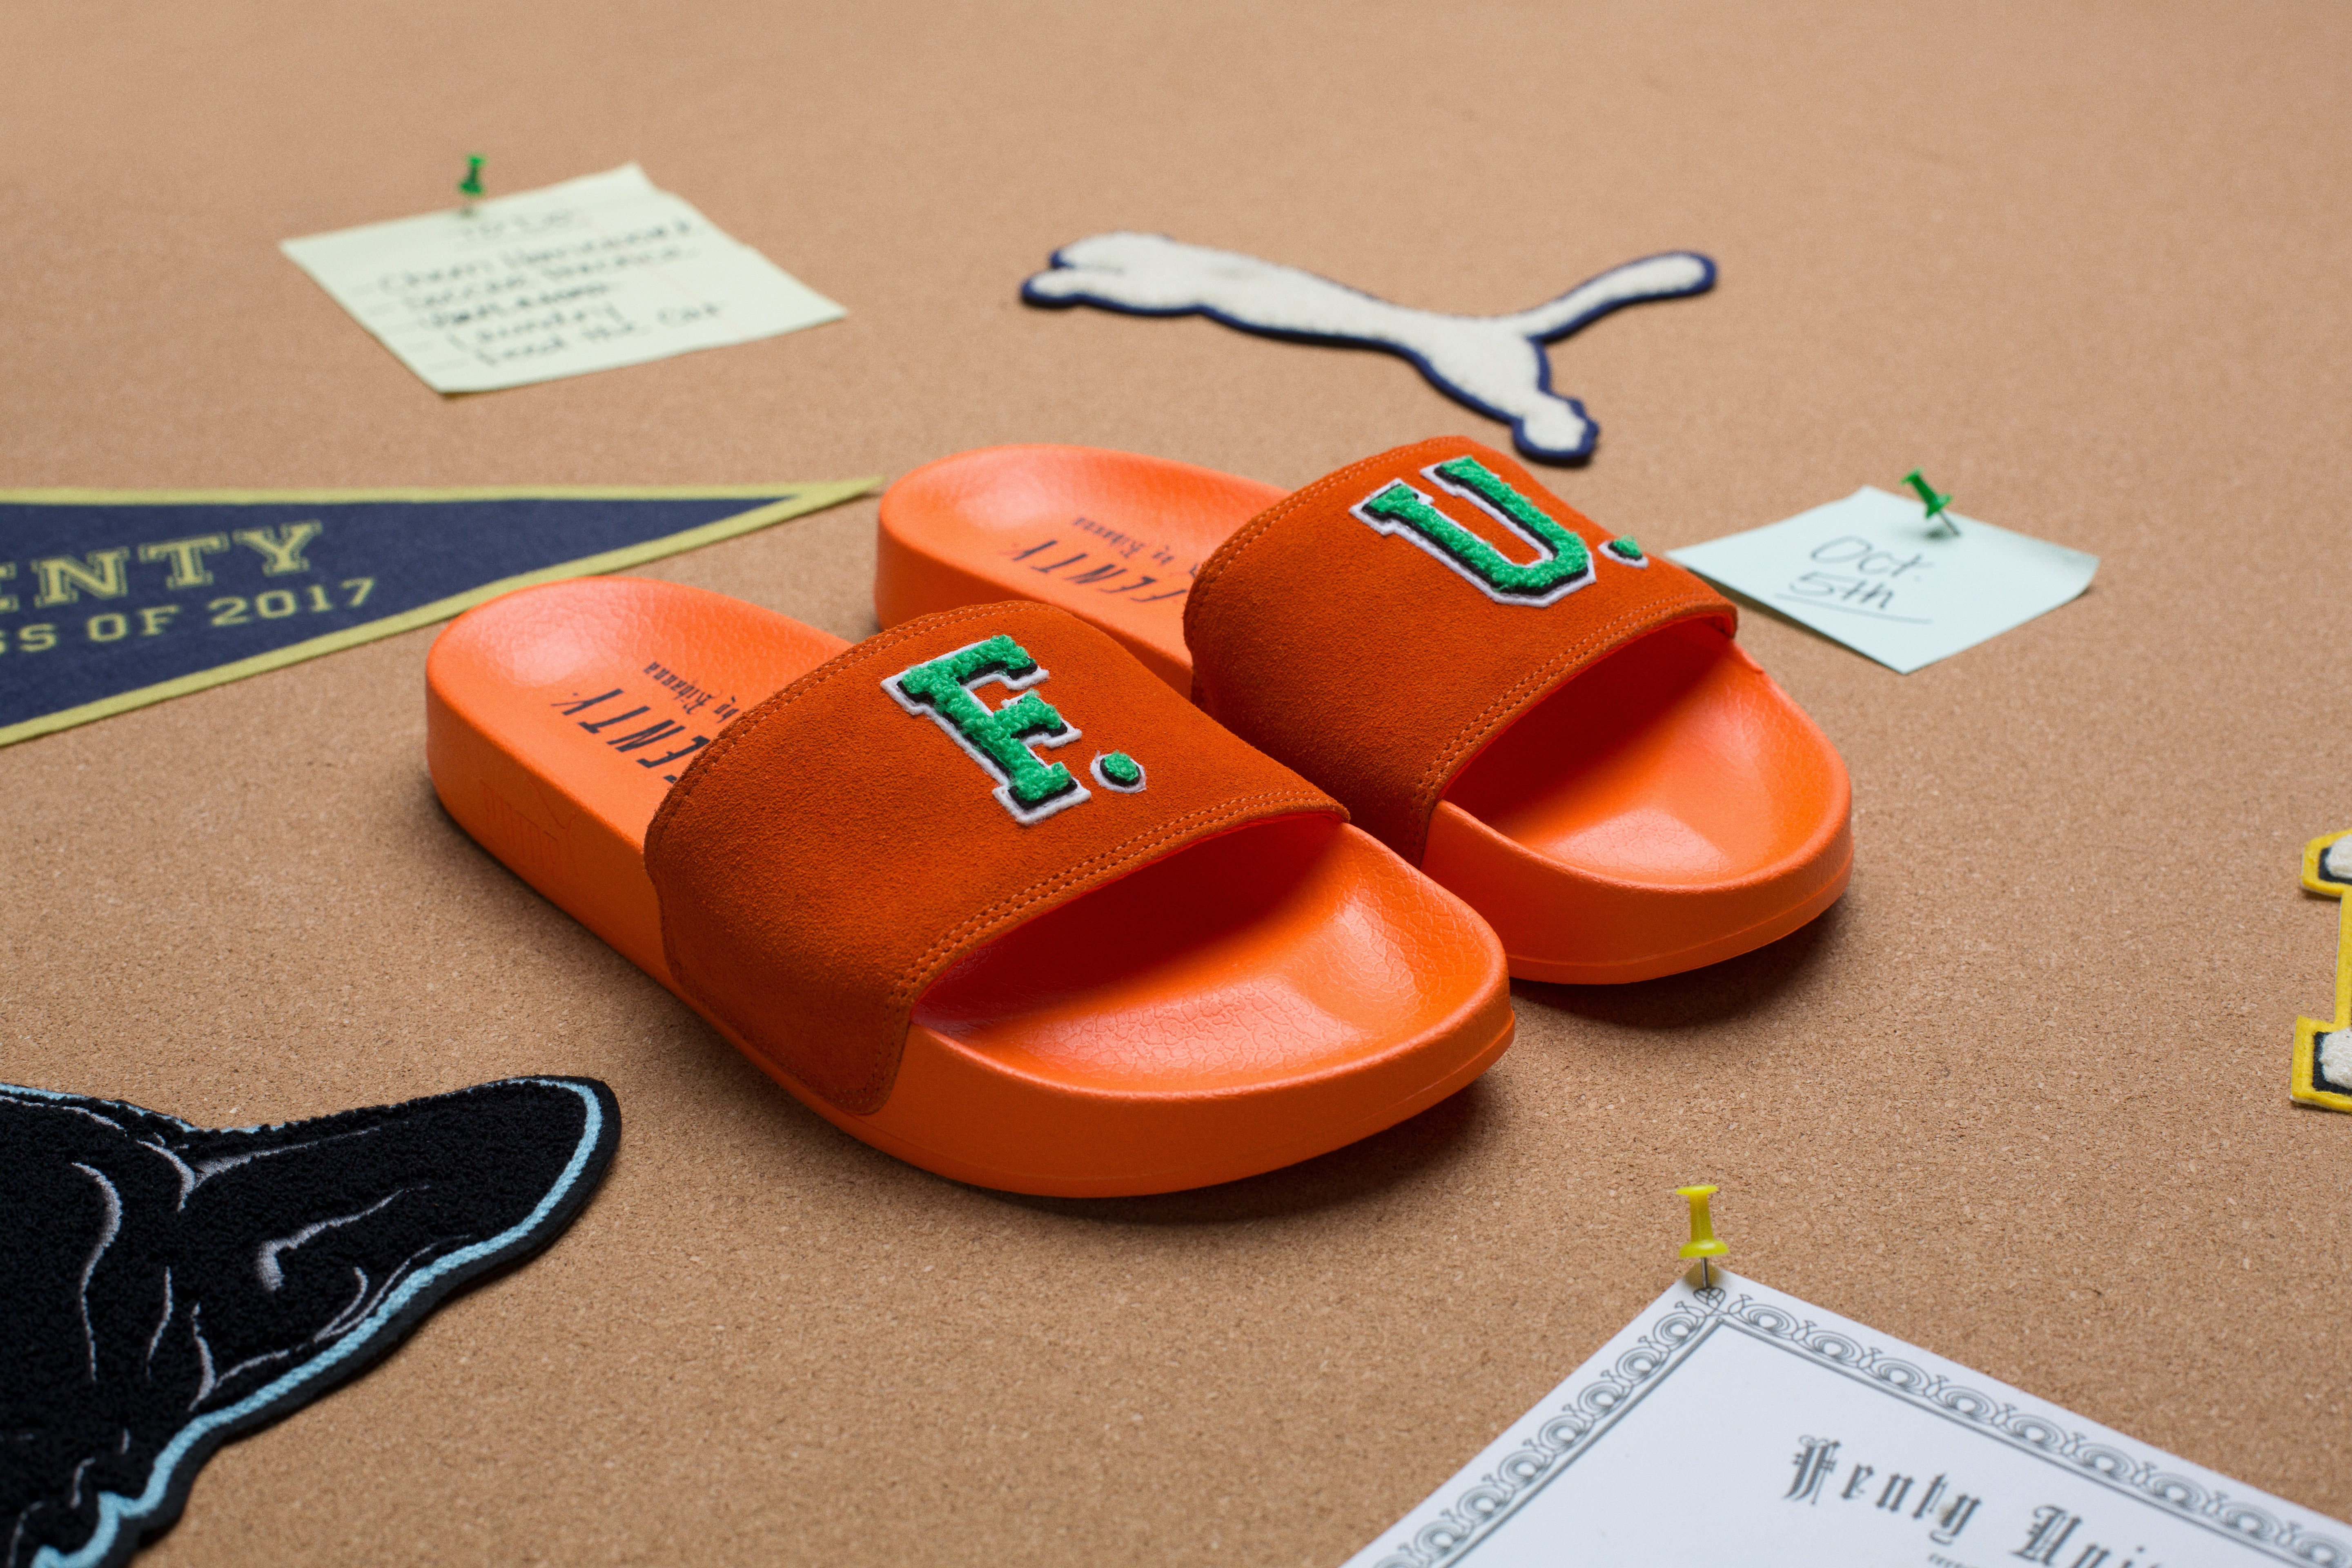 When Is The Rihanna x Puma Suede Slide Release  The Kicks Got A Makeover bf499acfe